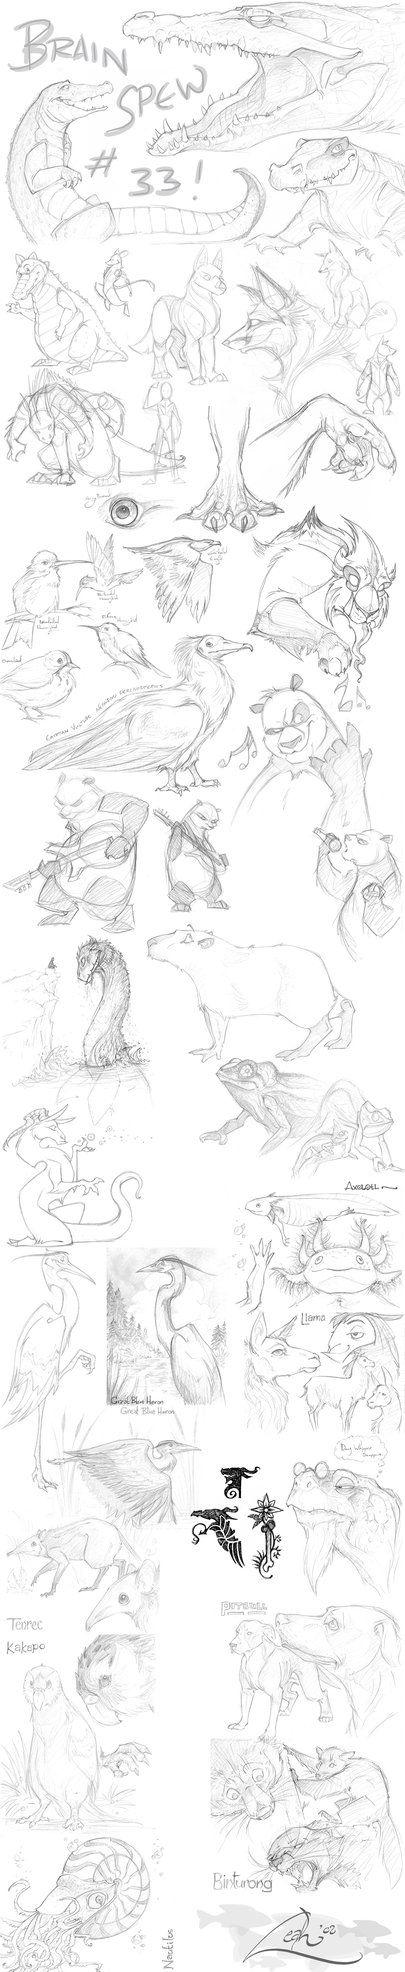 Originally Posted: December 21, 2008 ----- Buncha animal doodles I'd been waiting to post 'til I got hold of a scanner. Some of the journal animals are in here, the others I'm still working on. Tha...